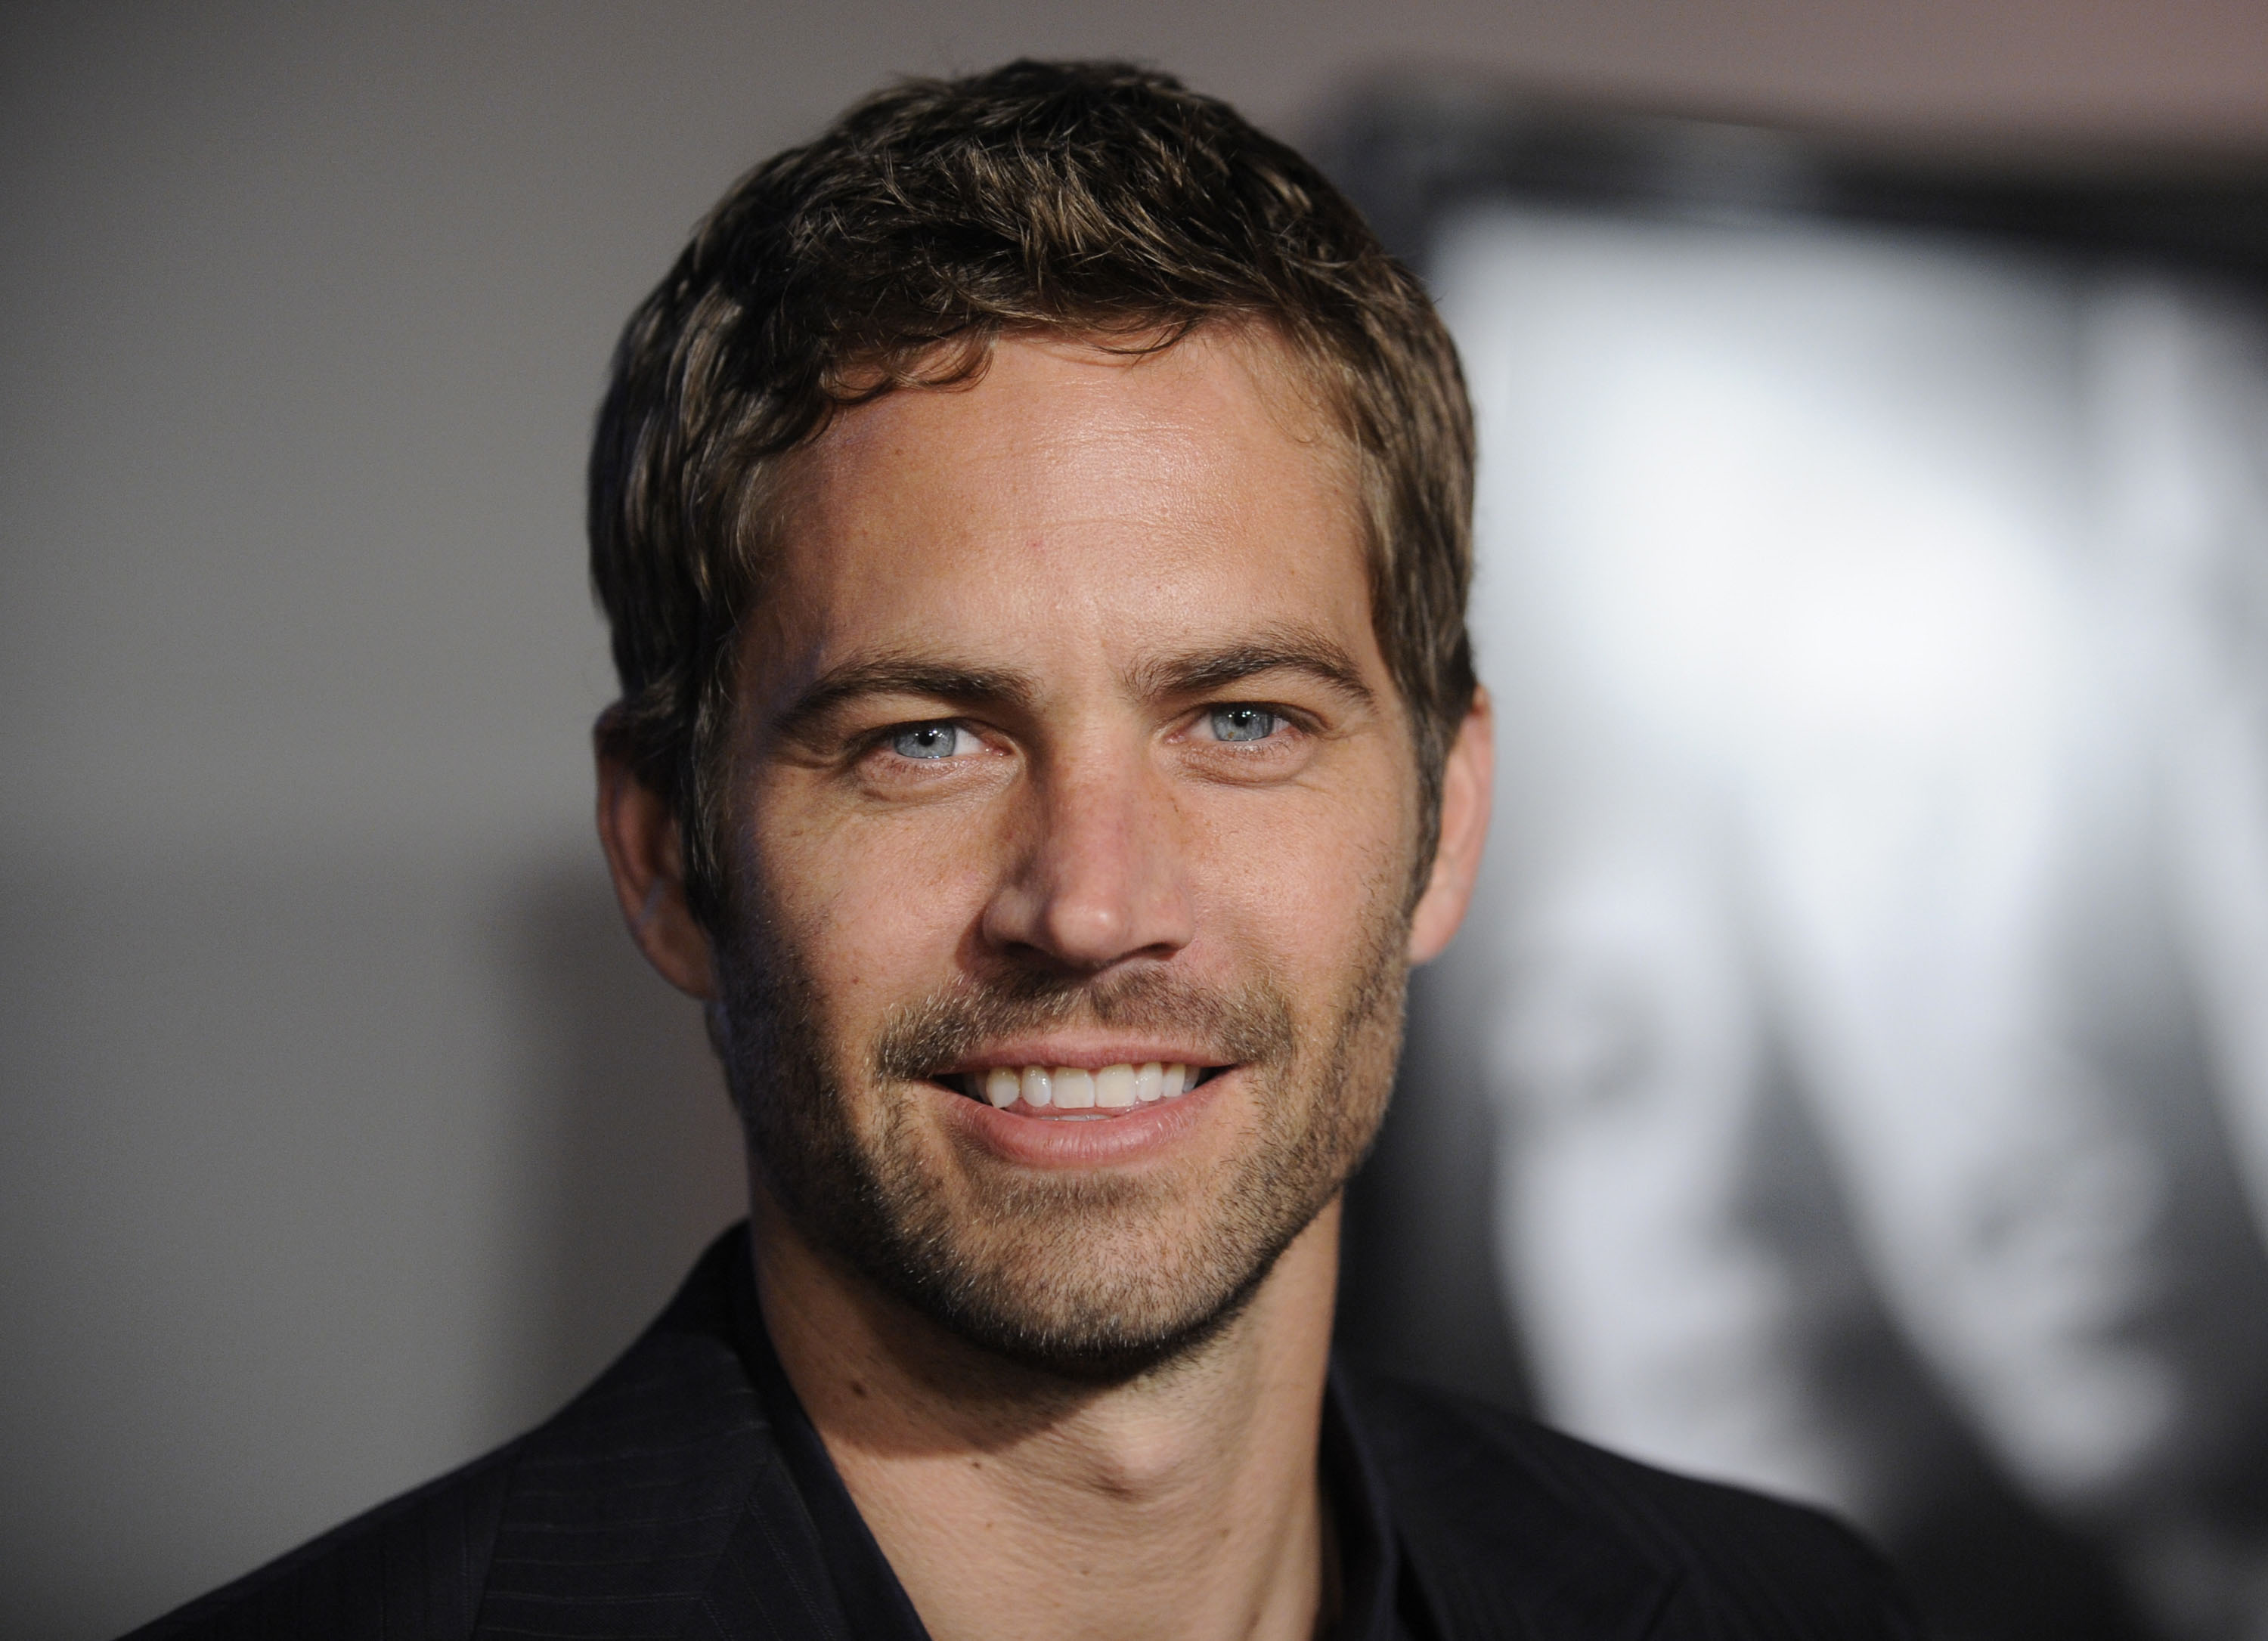 Image #: 7577706    Cast member Paul Walker attends the premiere of the film 'Fast & Furious' in Los Angeles March 12, 20